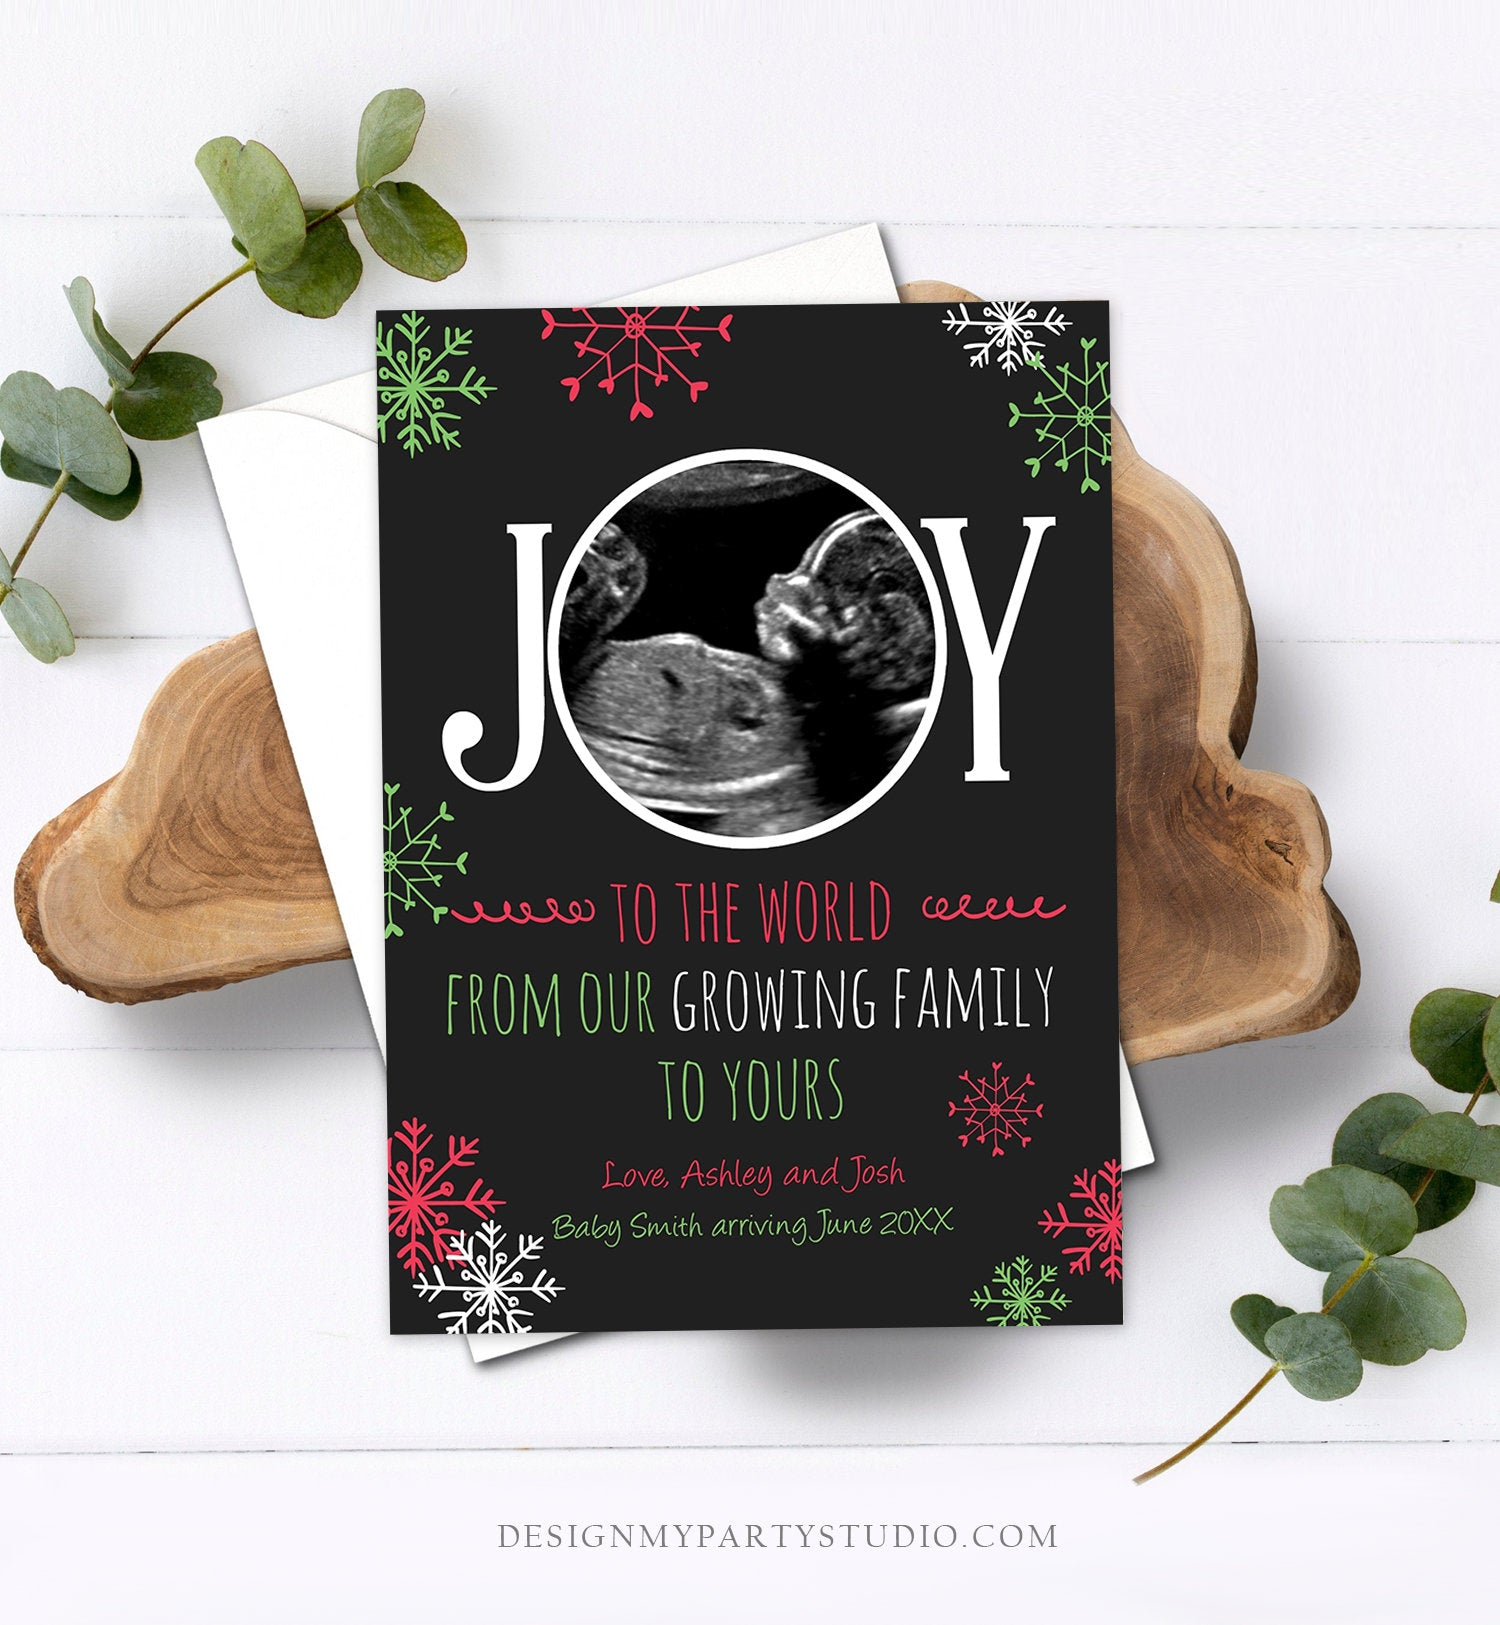 Editable Christmas Pregnancy Announcement Grandparents Joy Family Pregnancy Reveal Photo Ultrasound Printable Invitation Template Corjl